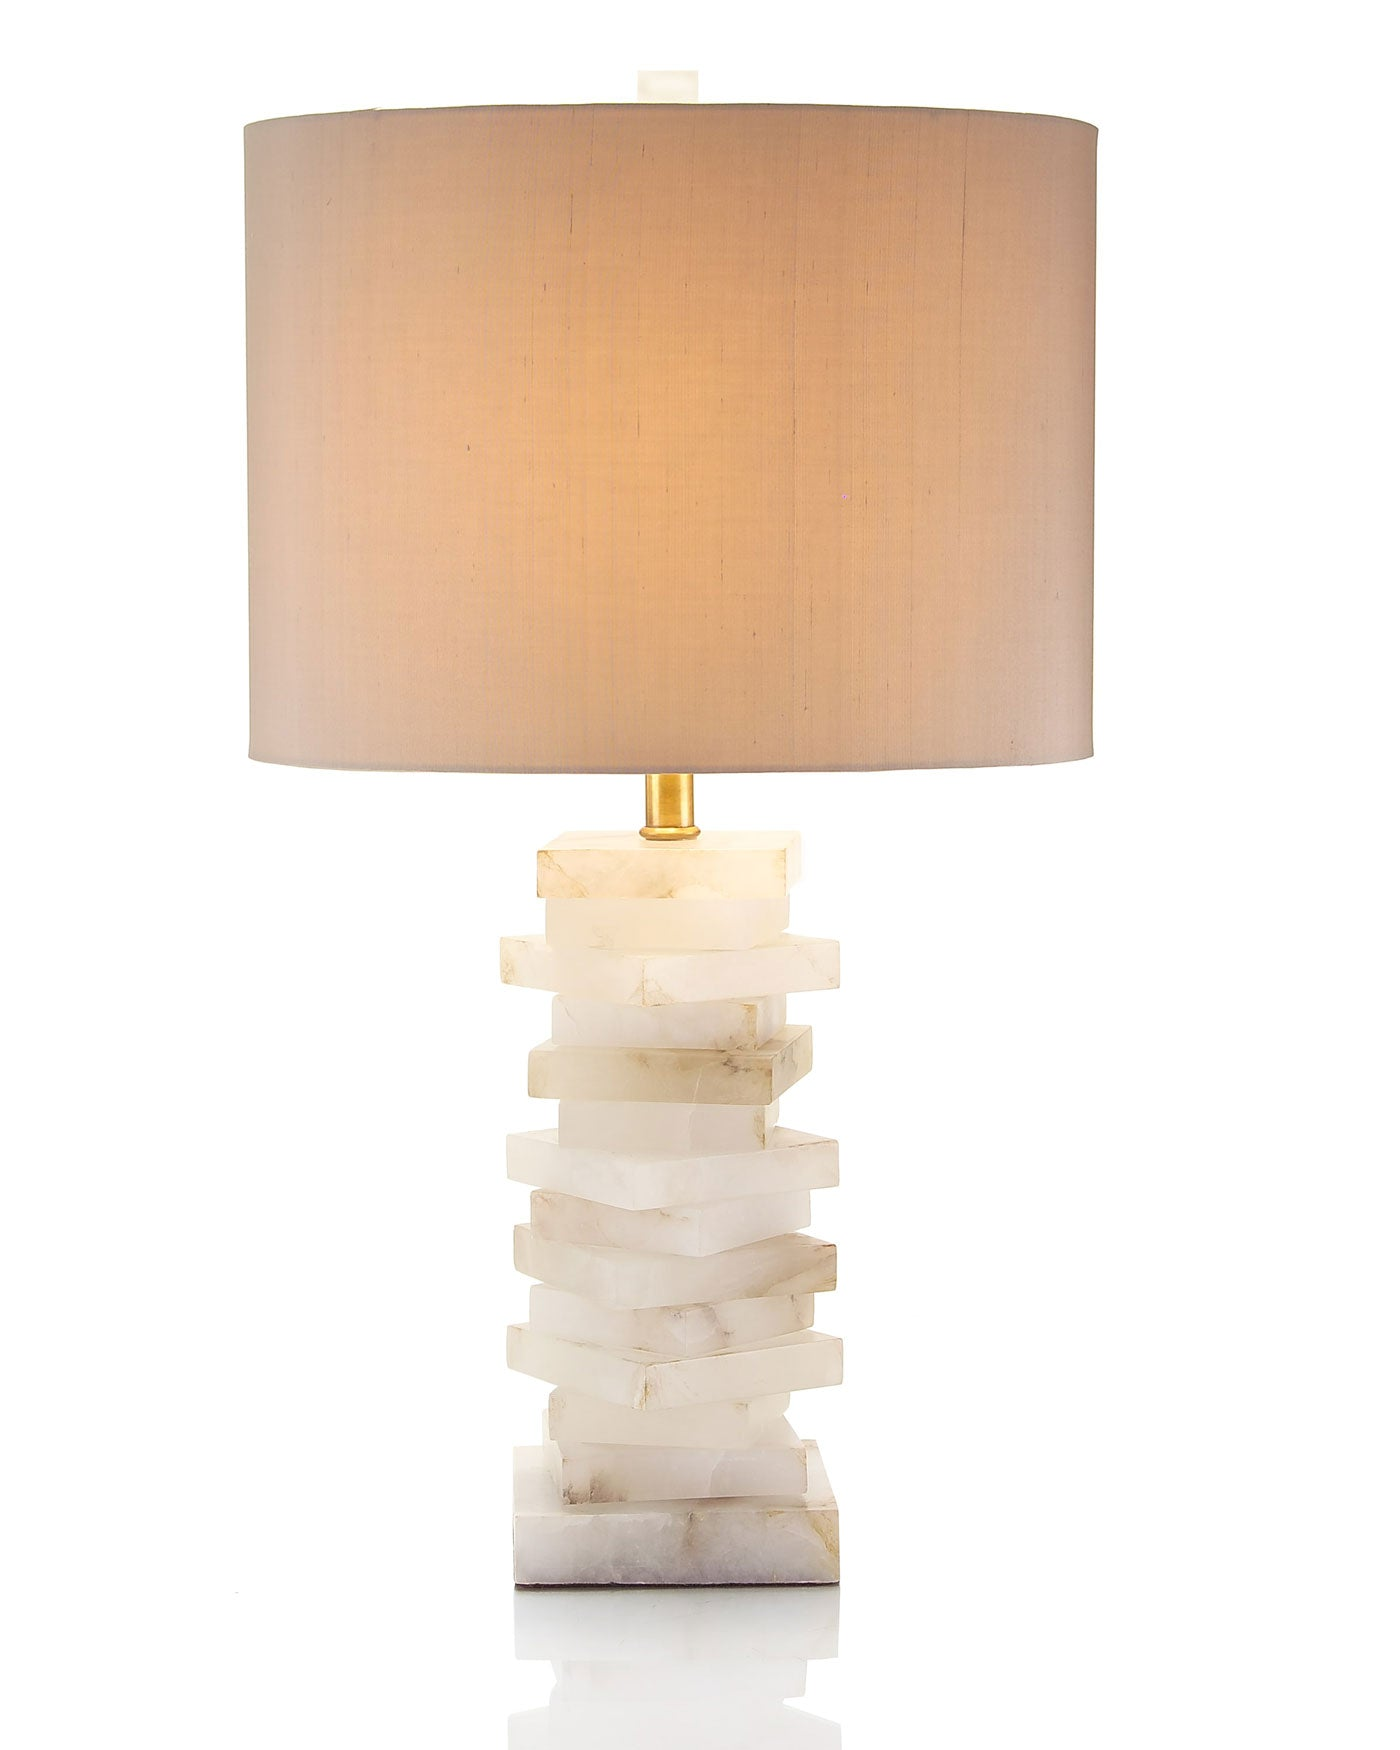 Alabaster Block Lamp